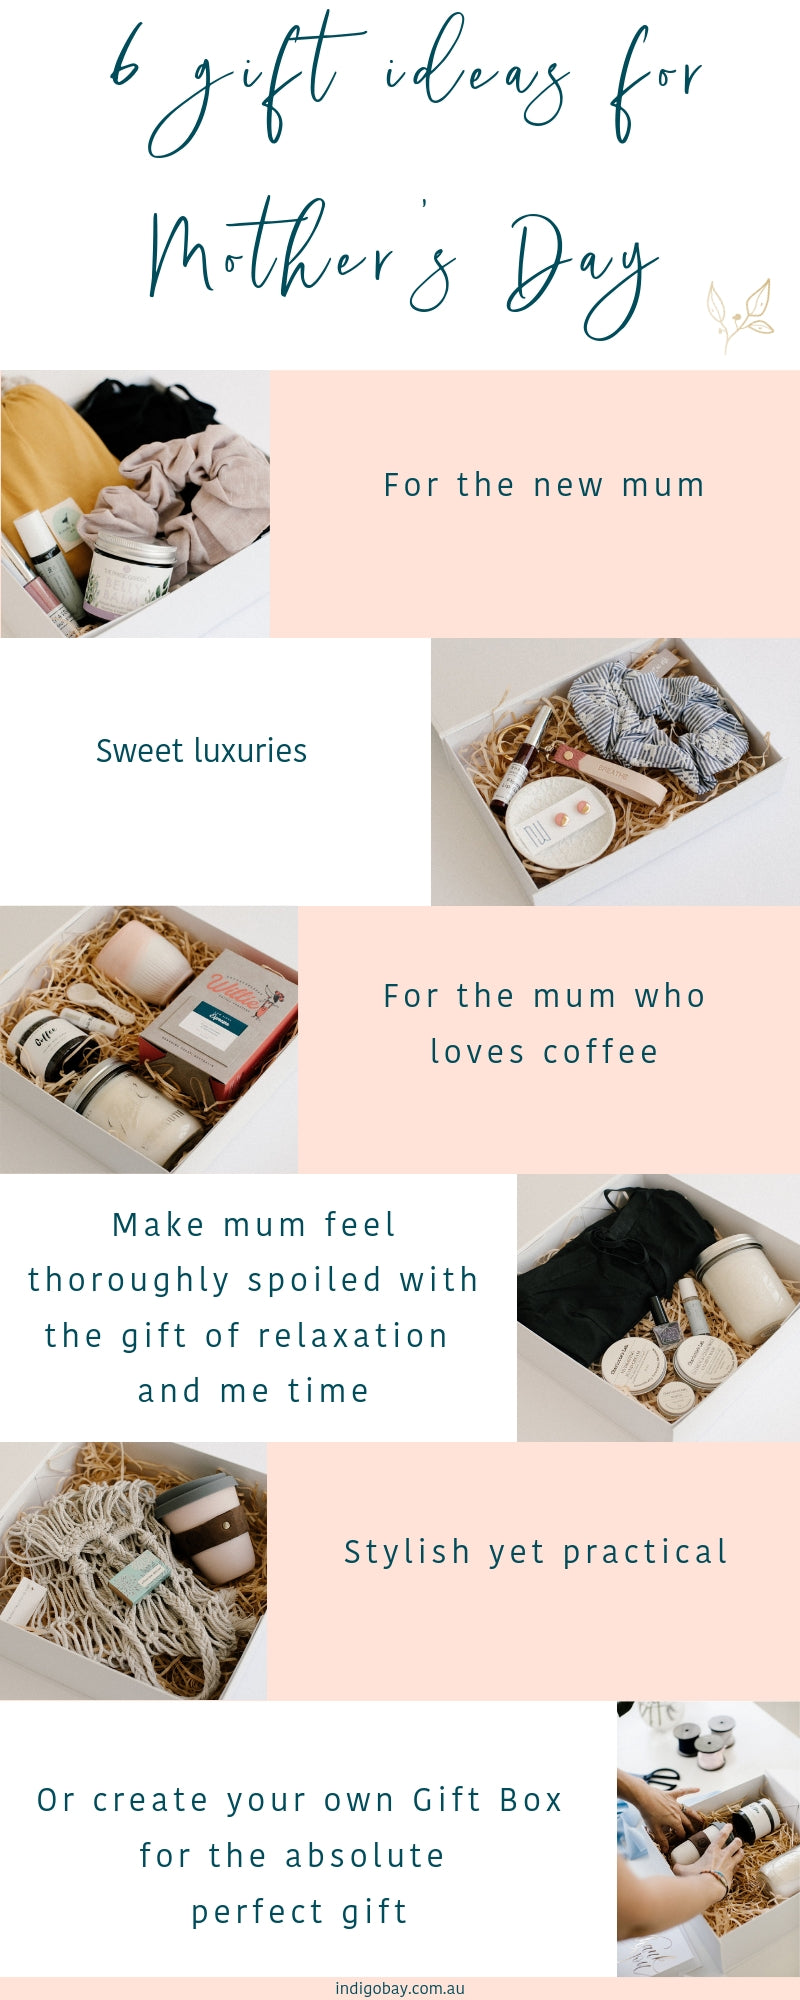 Indigo Bay Mother's Day Gift Guide